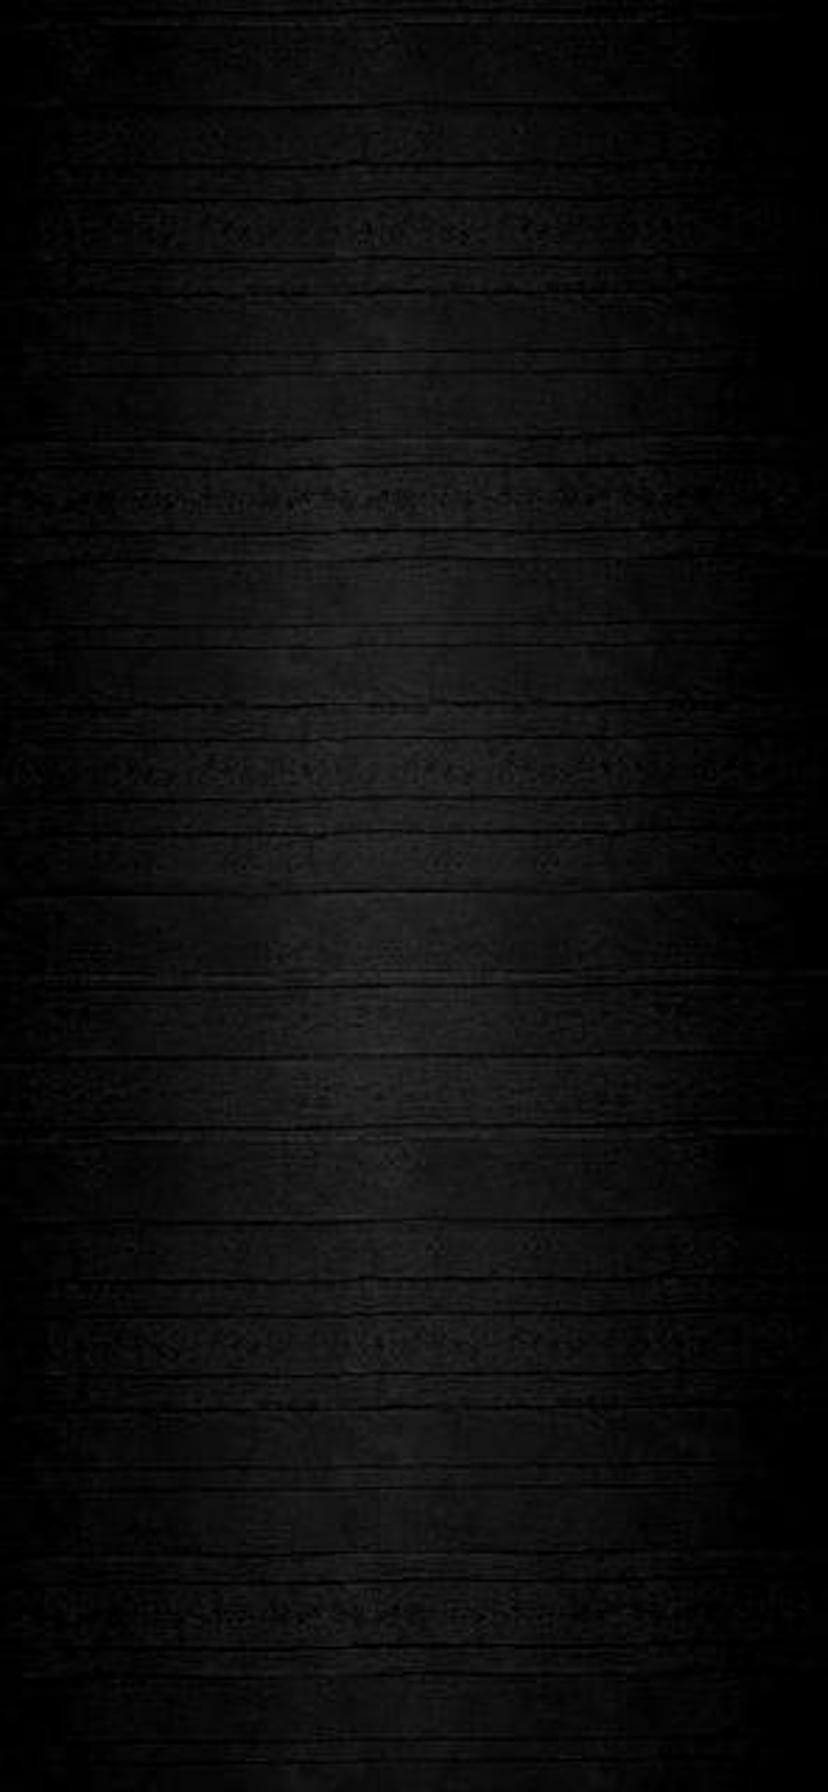 Black Iphone Xr Wallpapers Top Free Black Iphone Xr Backgrounds